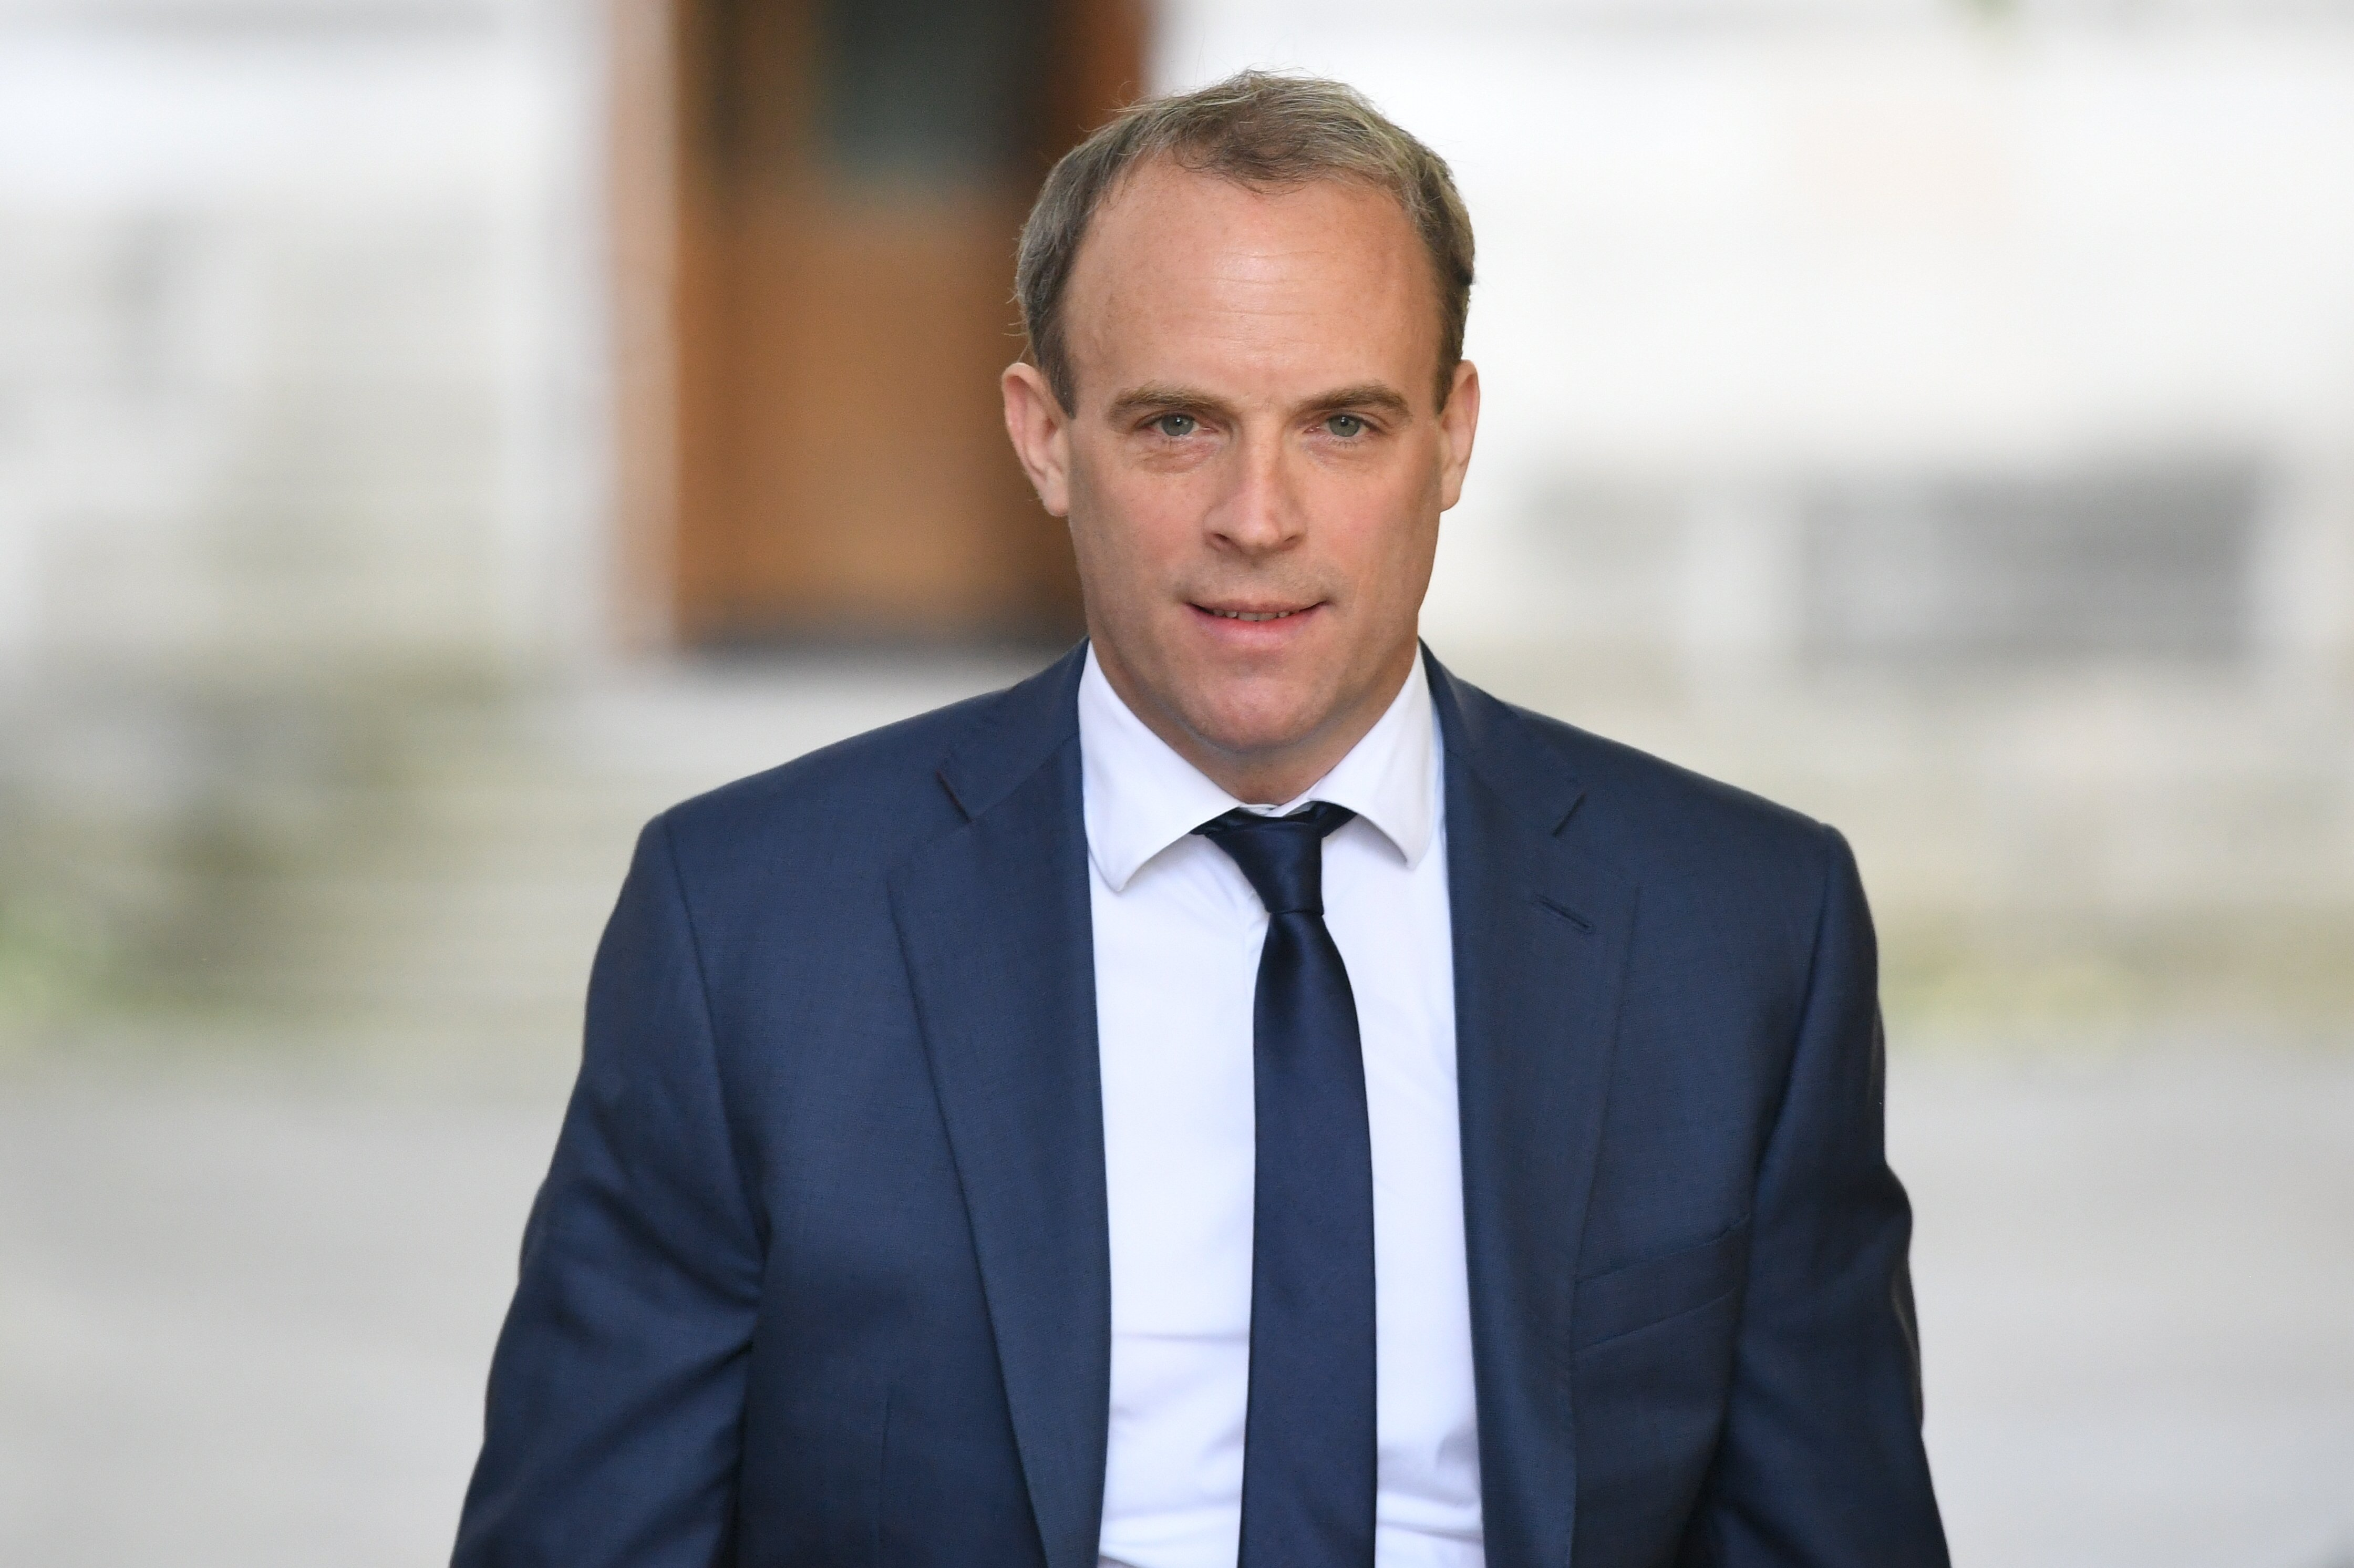 Protection officer travelling with Raab stood down after leaving gun on plane